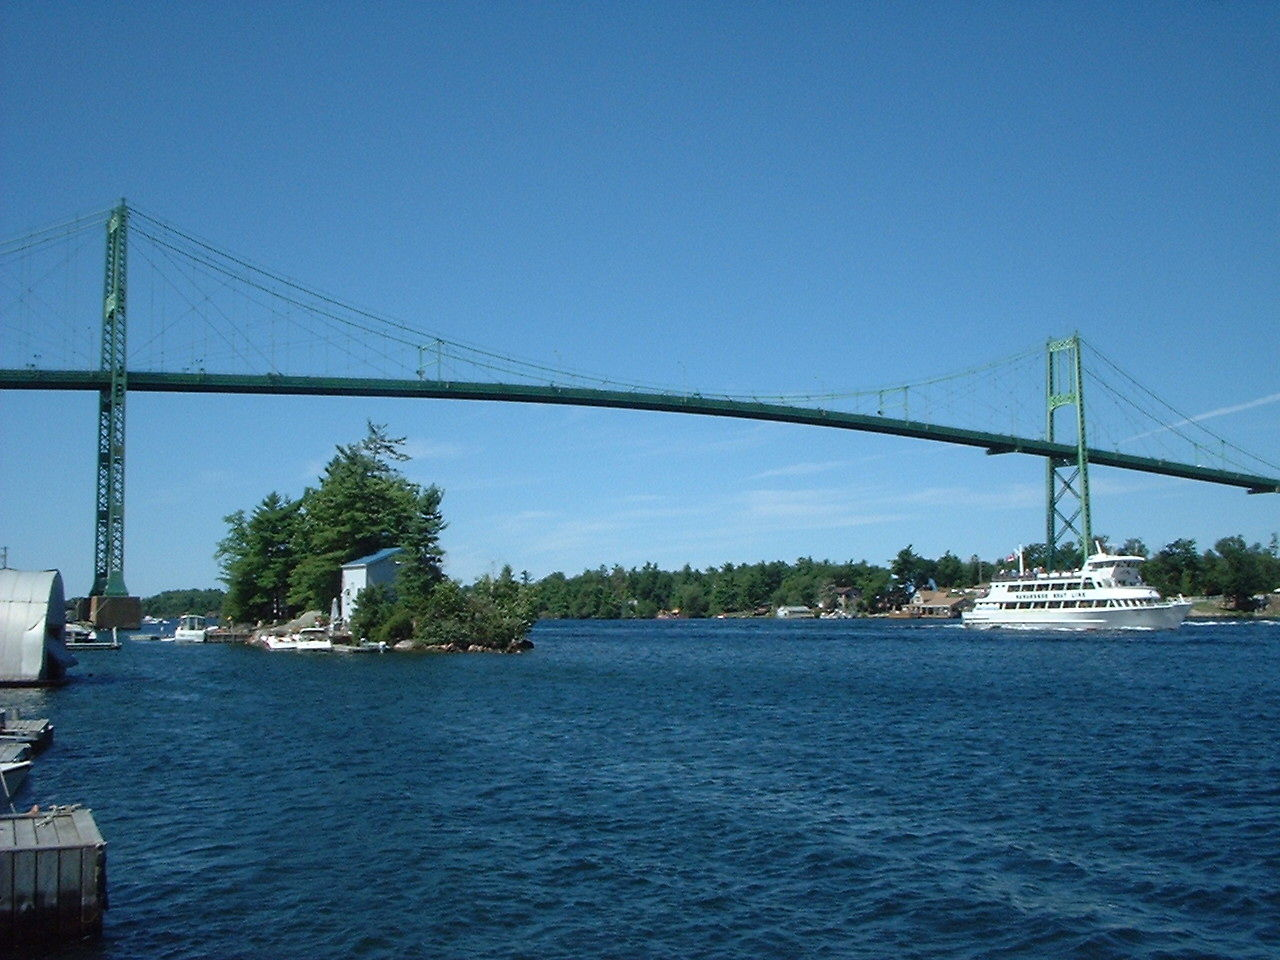 Connecticut To Thousand Islands